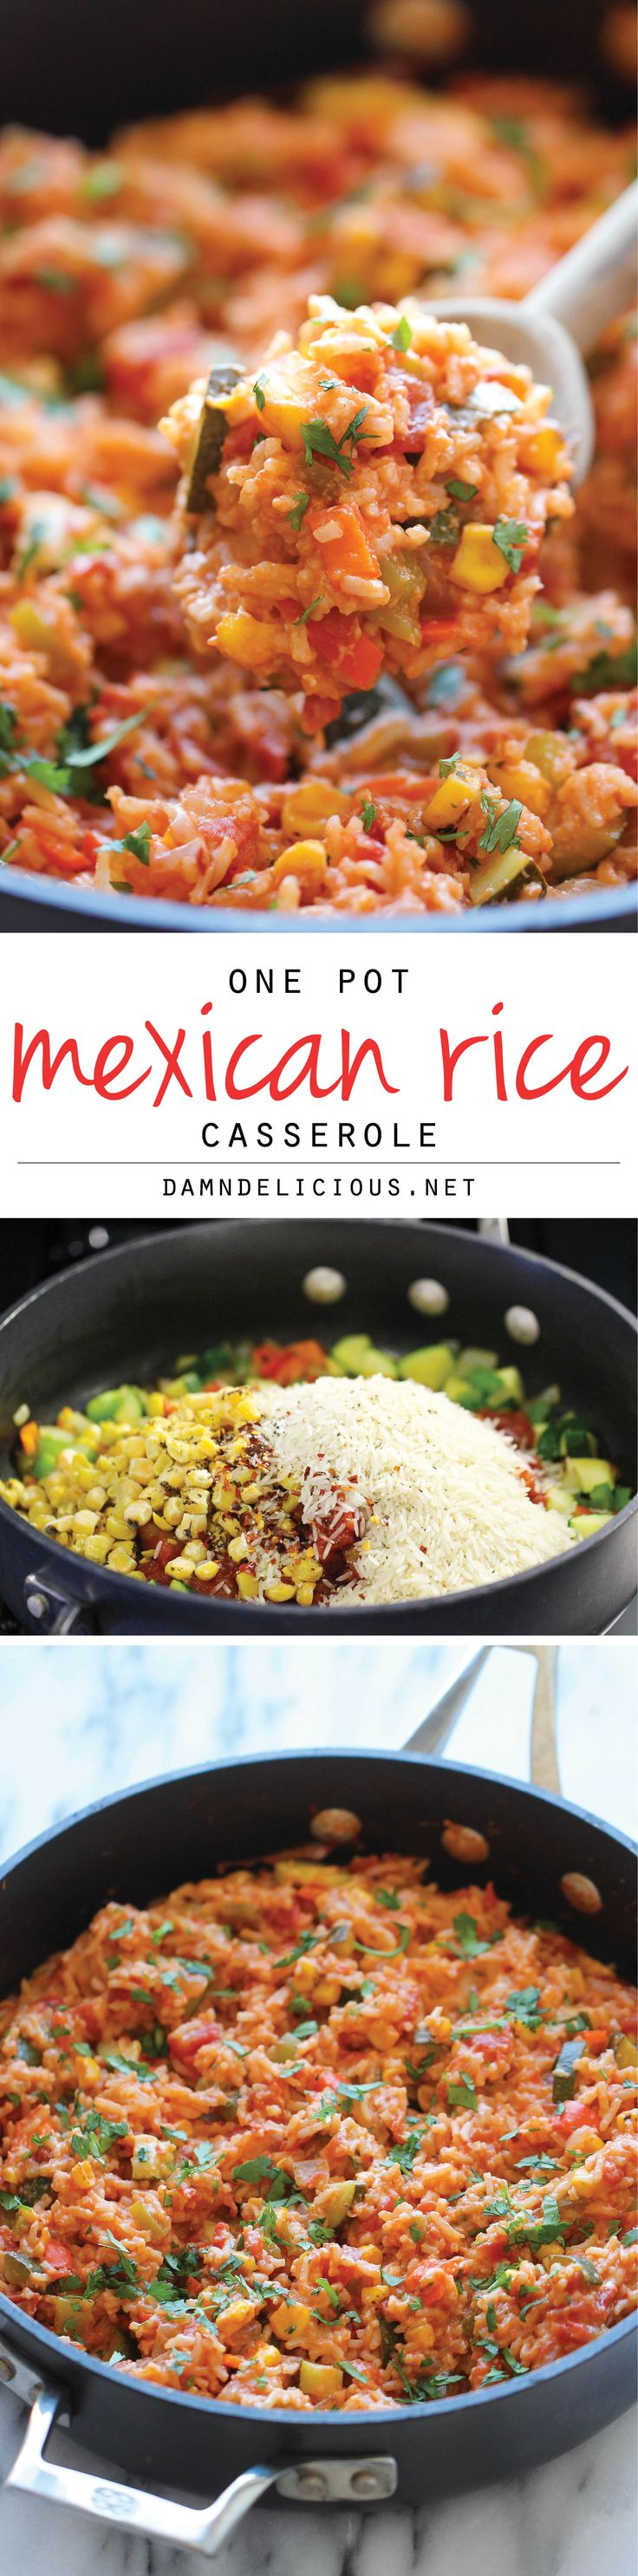 One Pot Mexican Rice Casserole – Good old comfort food made in a single pan – even the rice gets cooked right in the pot!